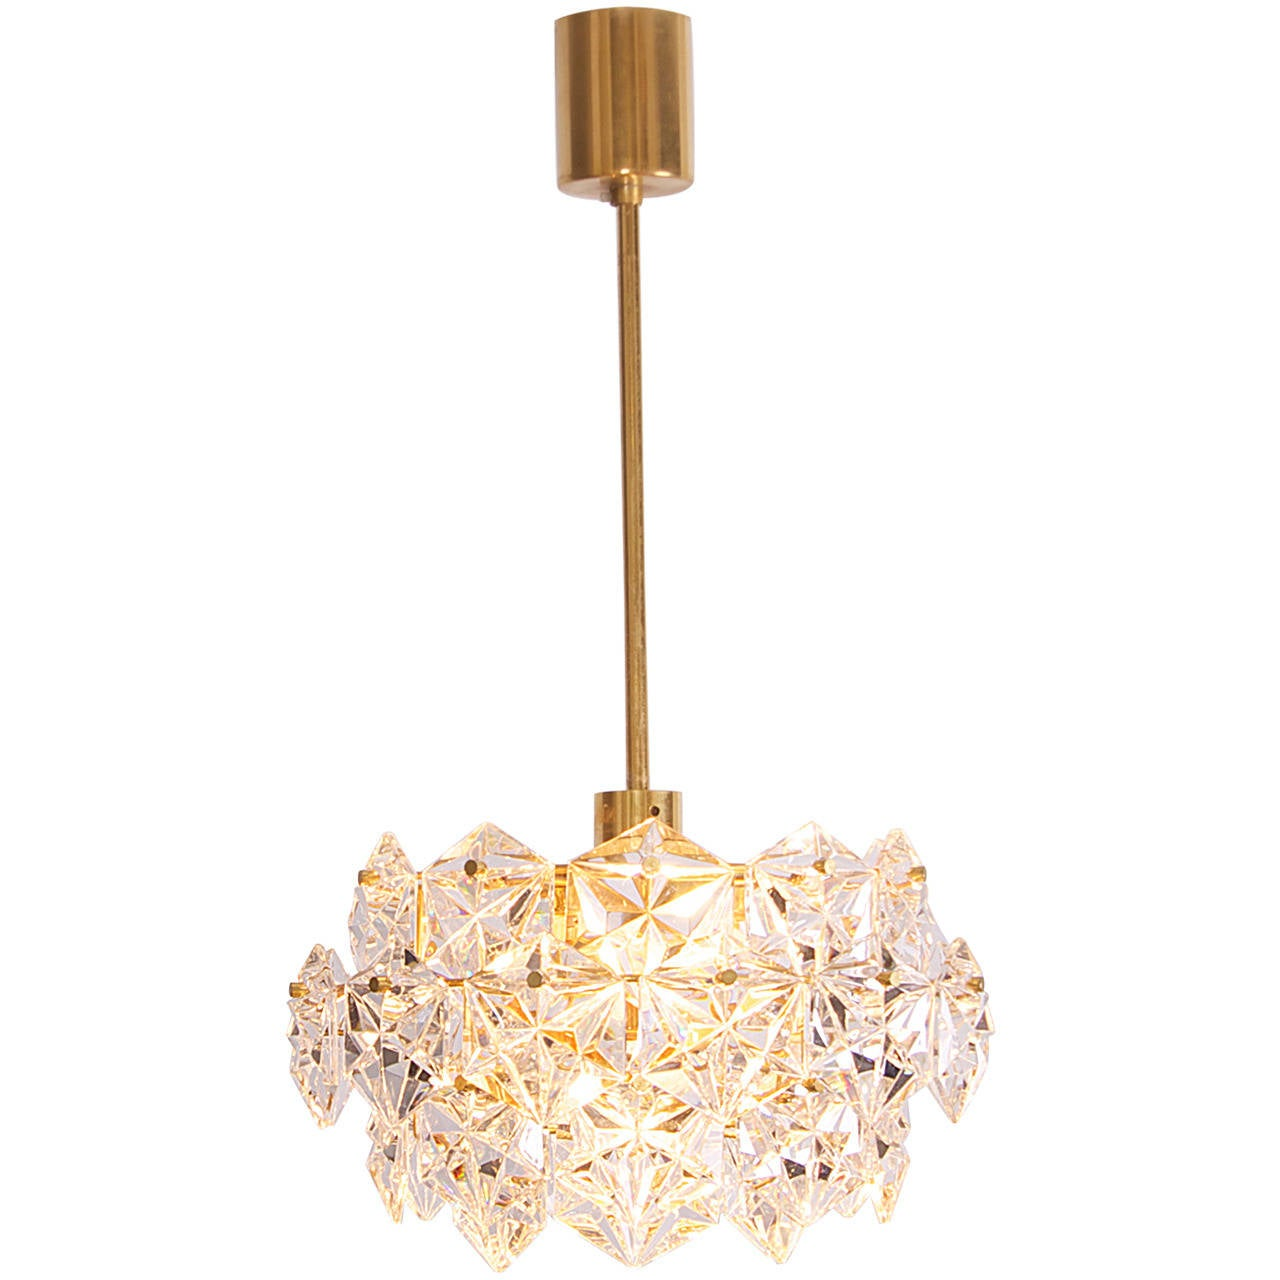 Four-Tier Crystal Glass Kinkeldey Chandelier